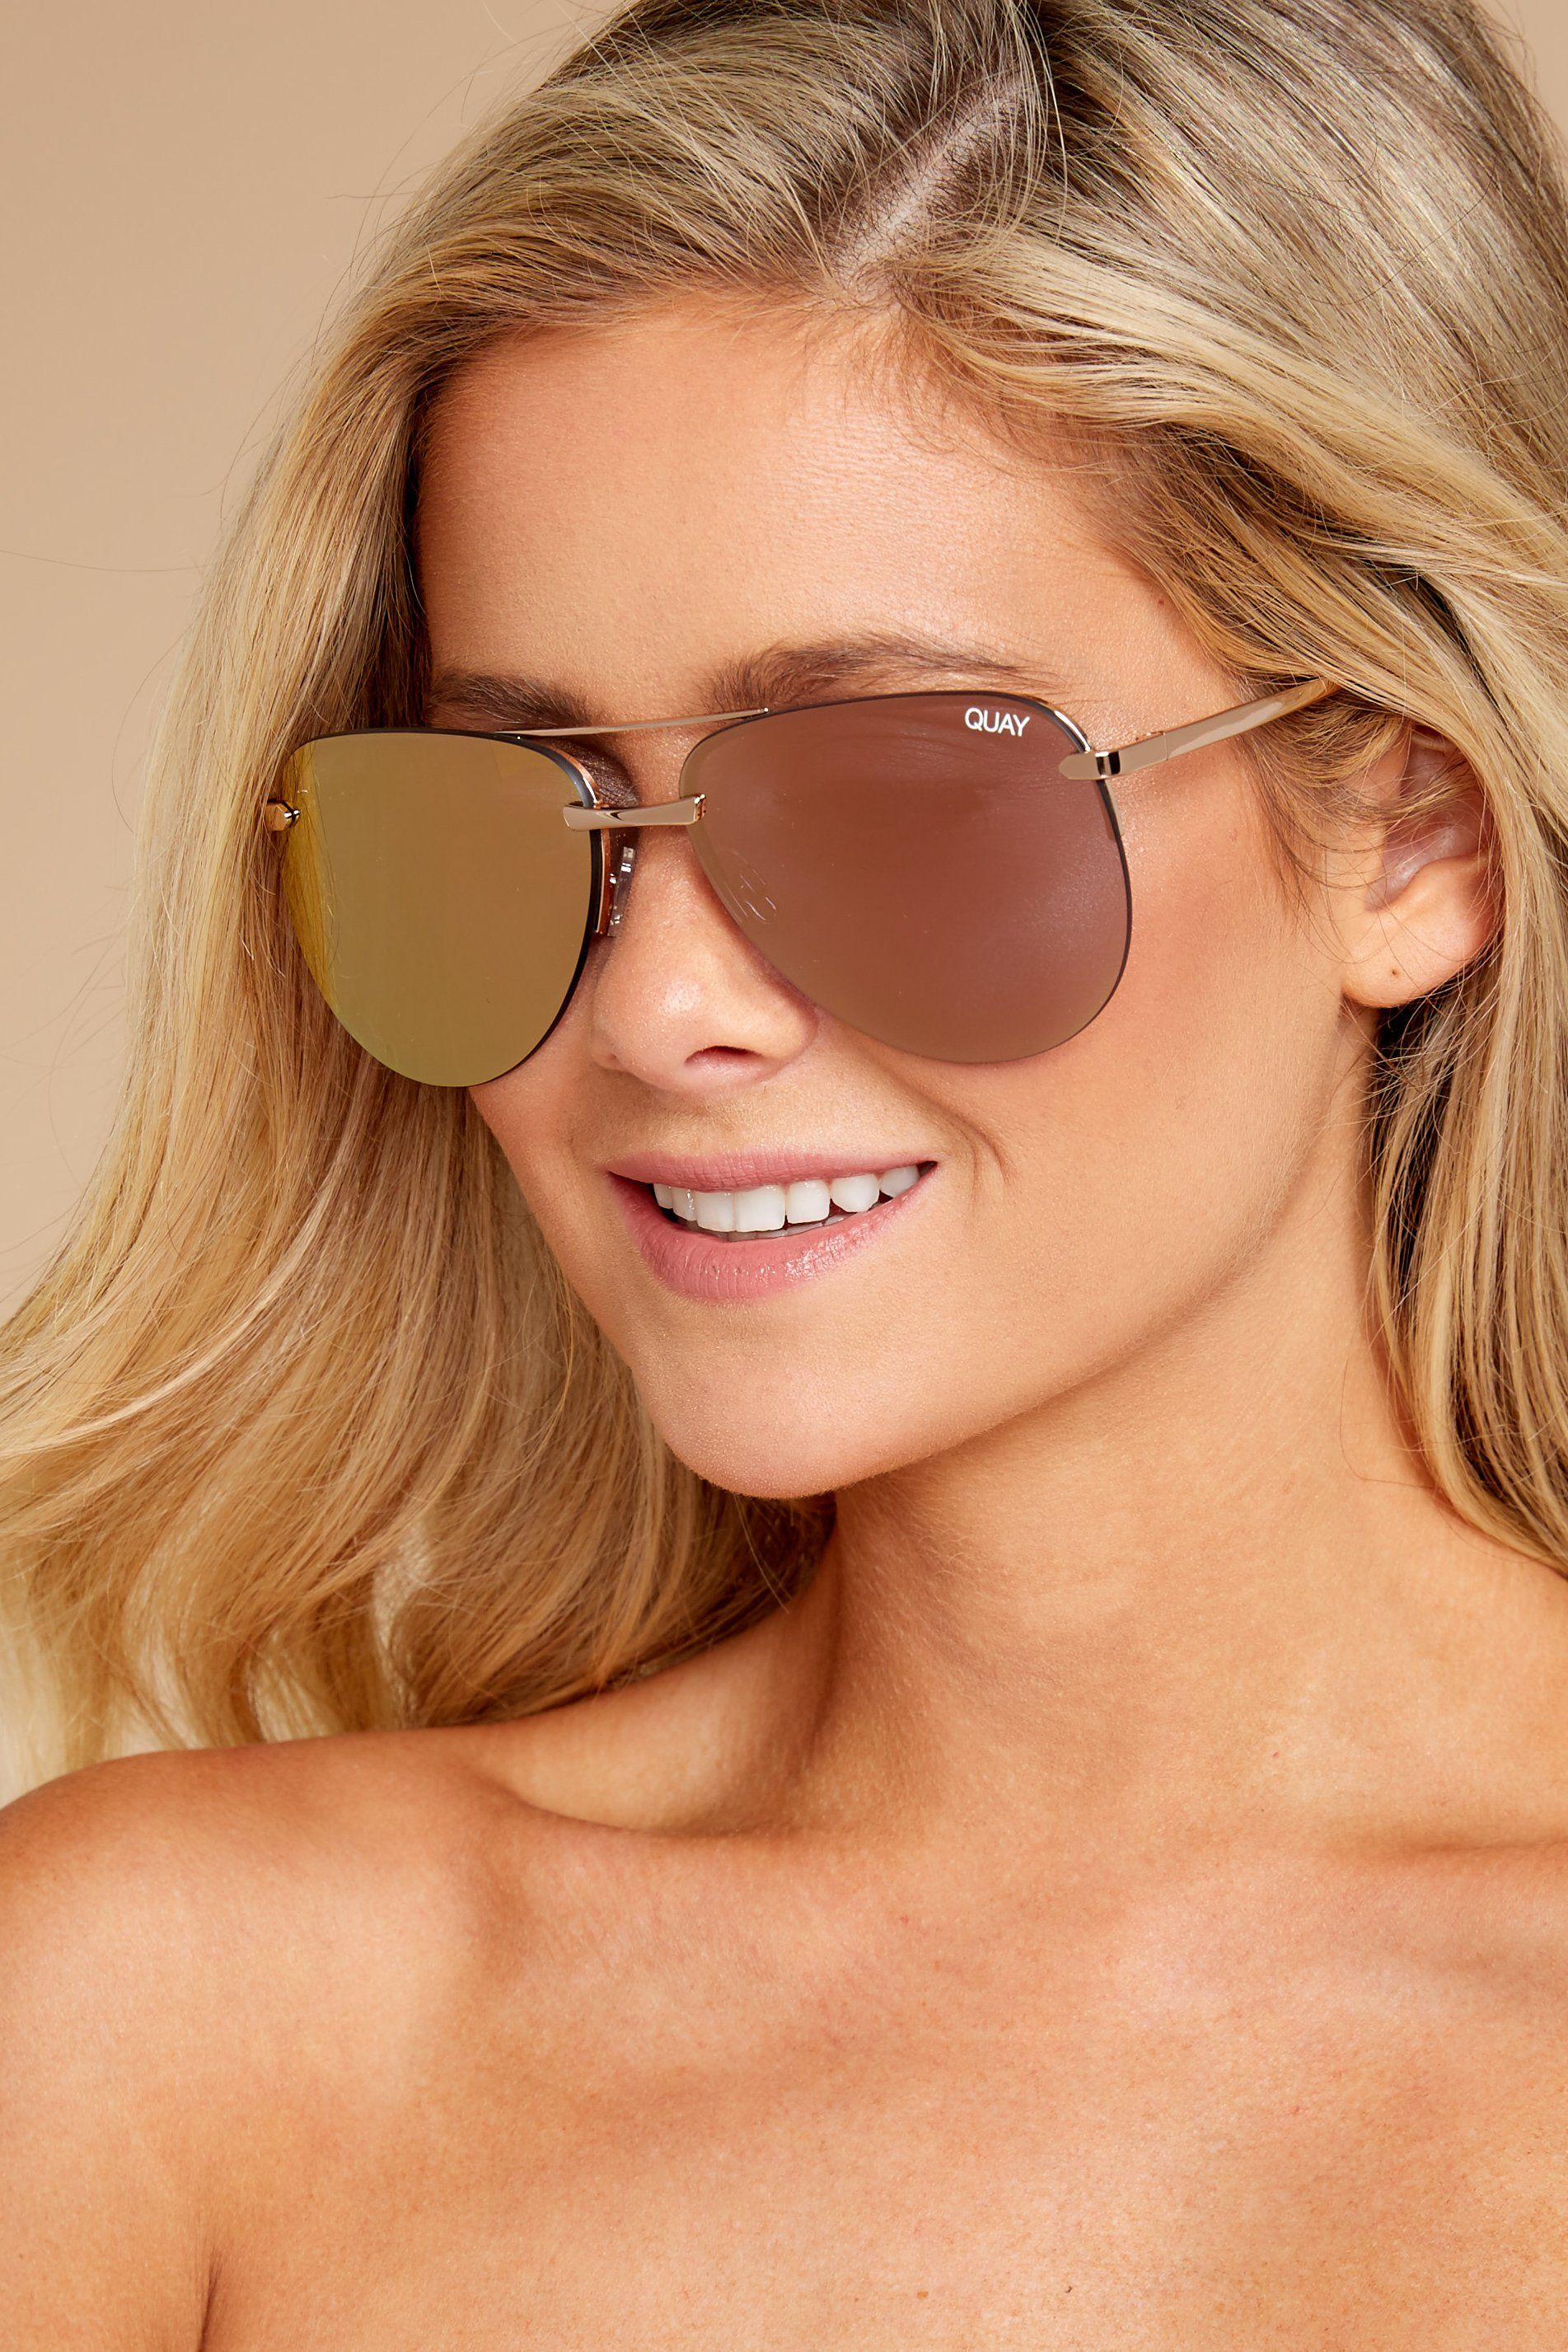 3d72620aa7bab Quay Australia Gold Pink Sunglasses - Chic Sunnies - Sunglasses -  60 – Red  Dress Boutique